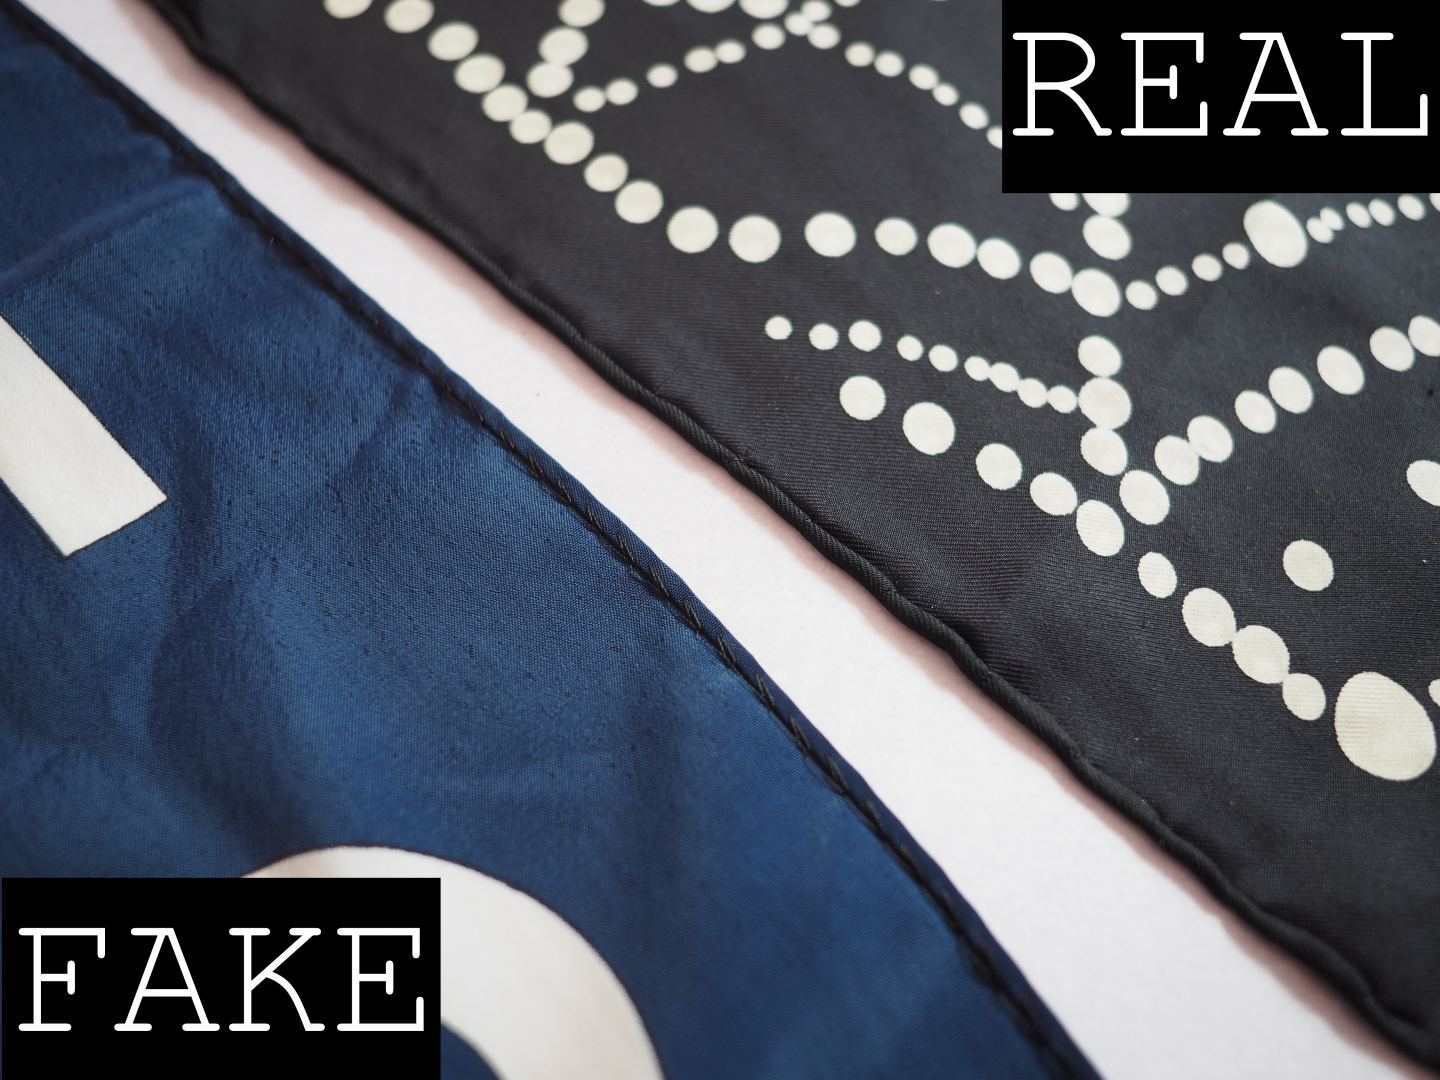 CHANEL SCARF REAL FAKE HOW TO SPOT A FAUX SILK SCARF CLOSE UP